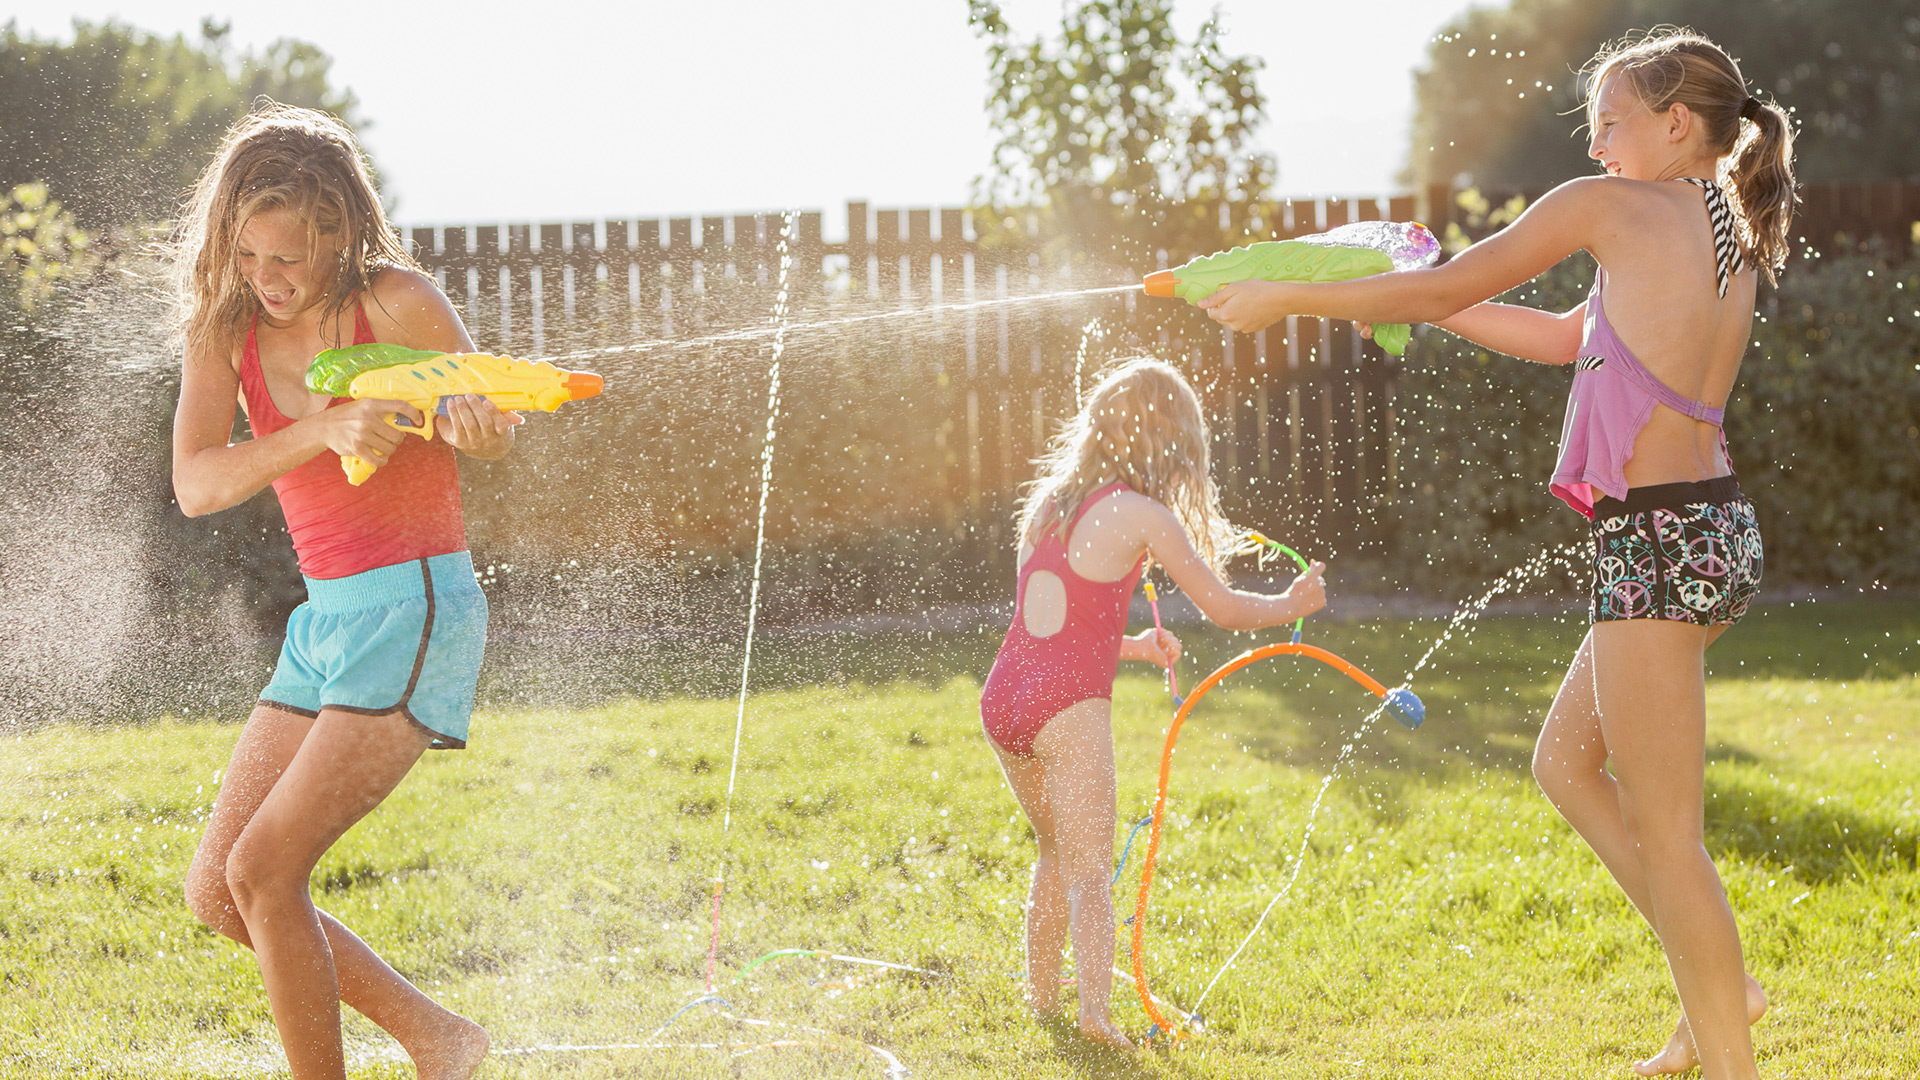 Playing with sprinklers | Sheknows.com